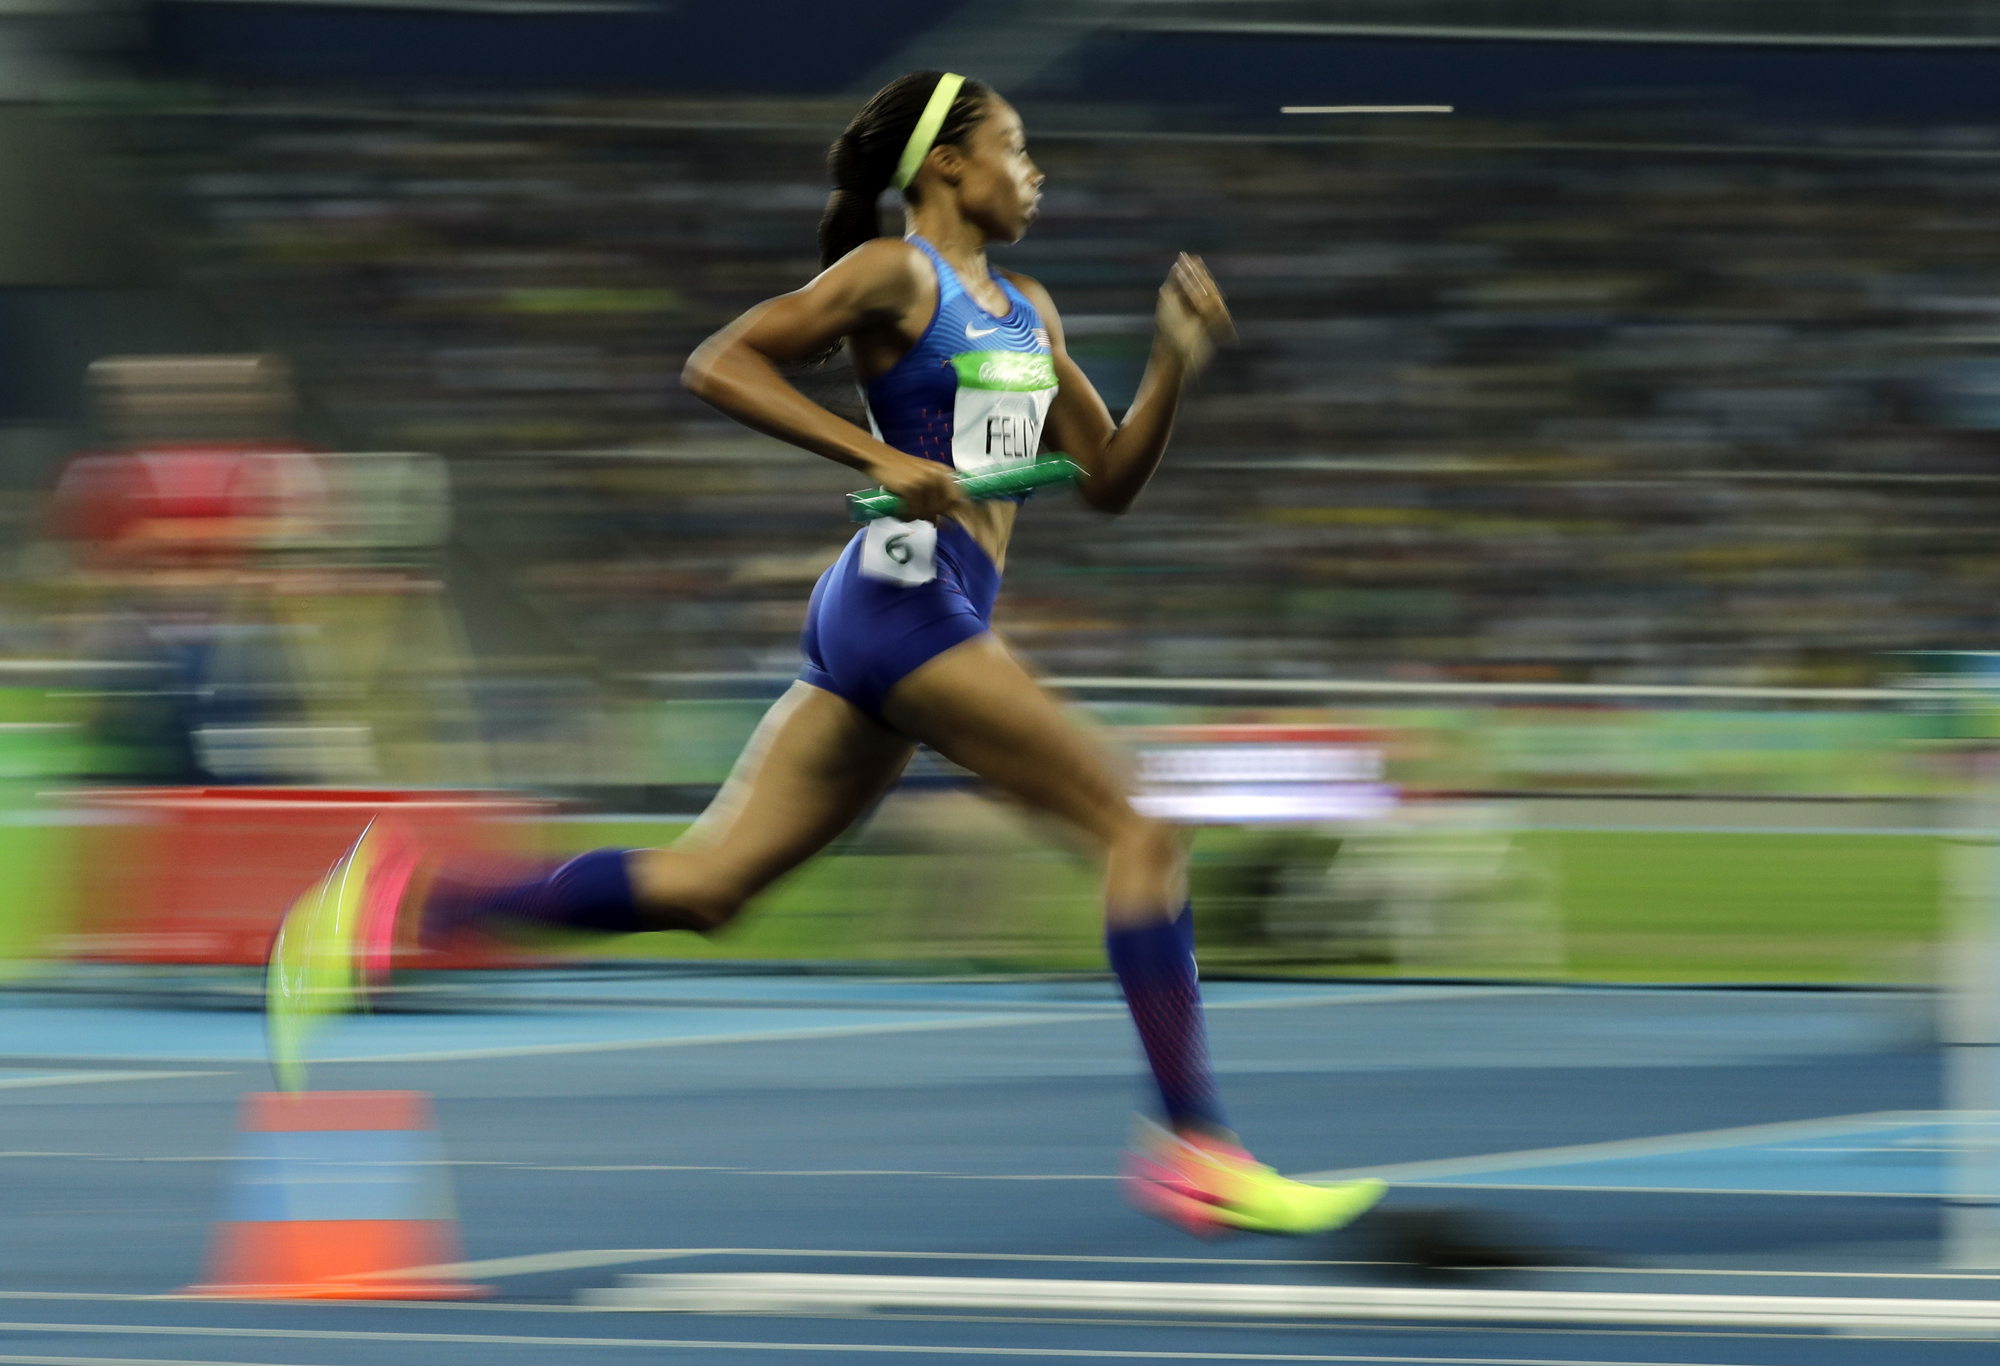 United States' Allyson Felix competes in the women's 4x400-meter relay final during the athletics competitions of the 2016 Summer Olympics at the Olympic stadium in Rio de Janeiro, Brazil, Saturday, Aug. 20, 2016.